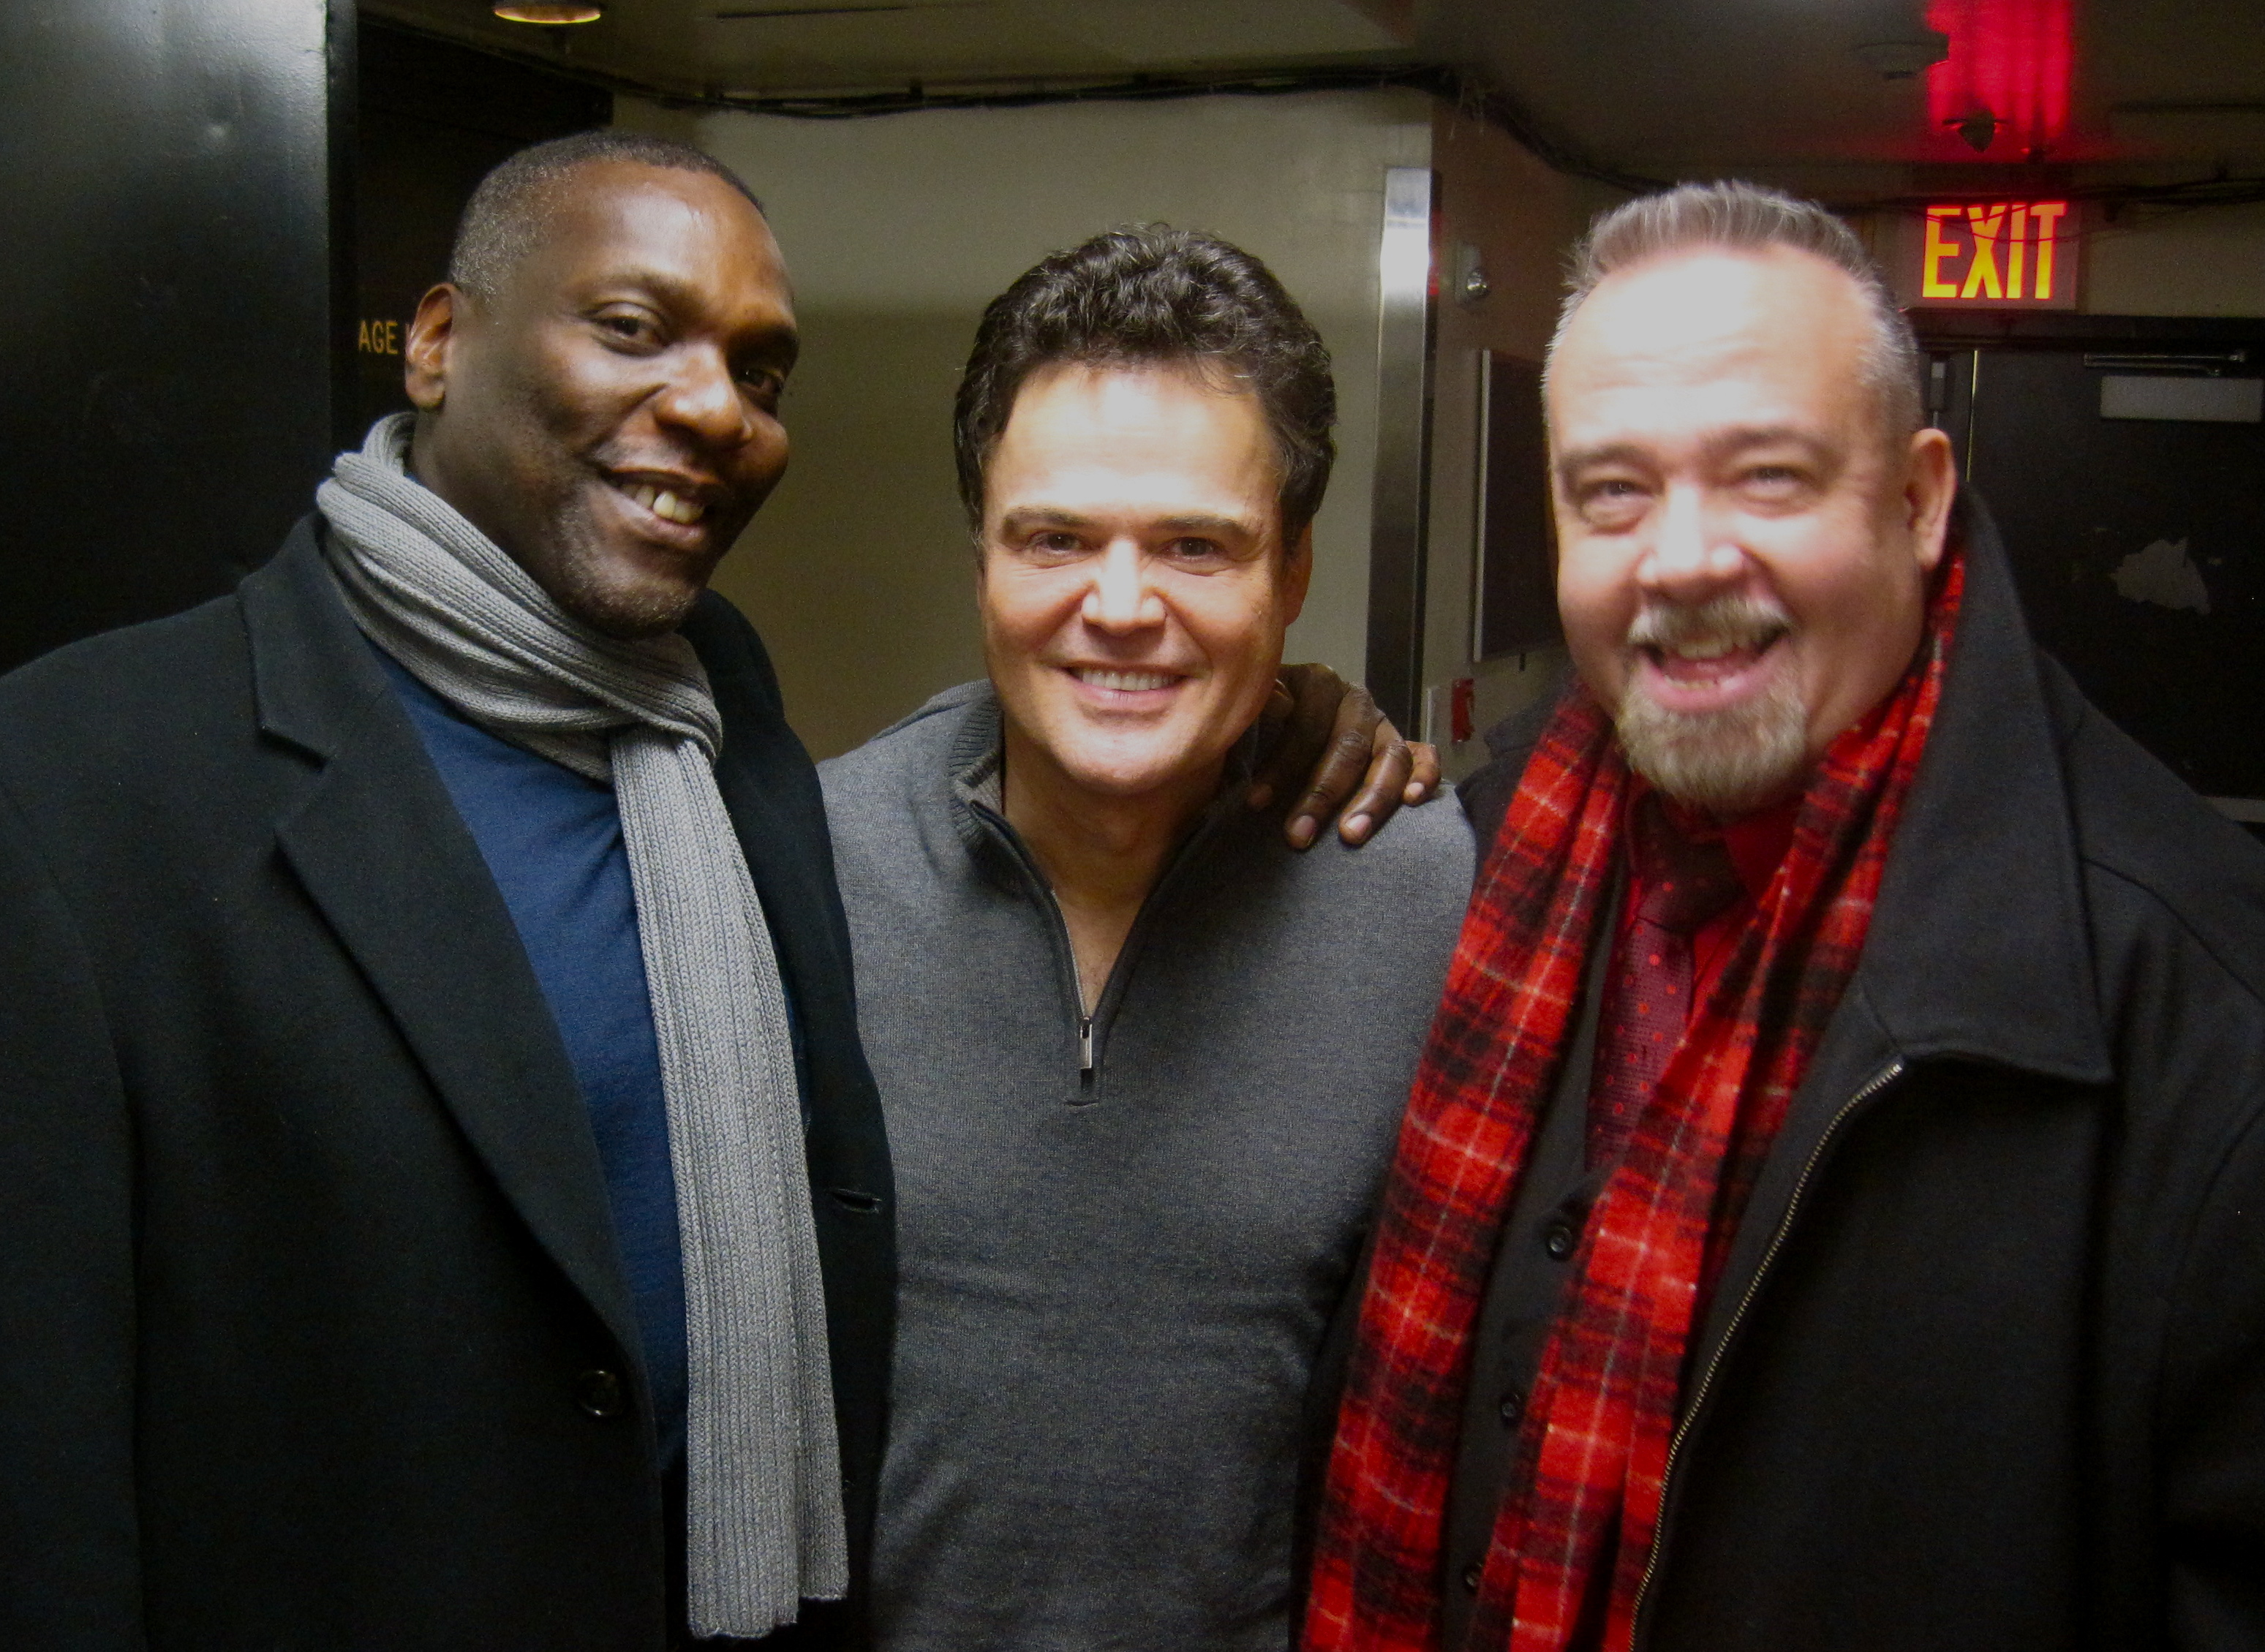 Gerry McIntrye & Donny Osmond